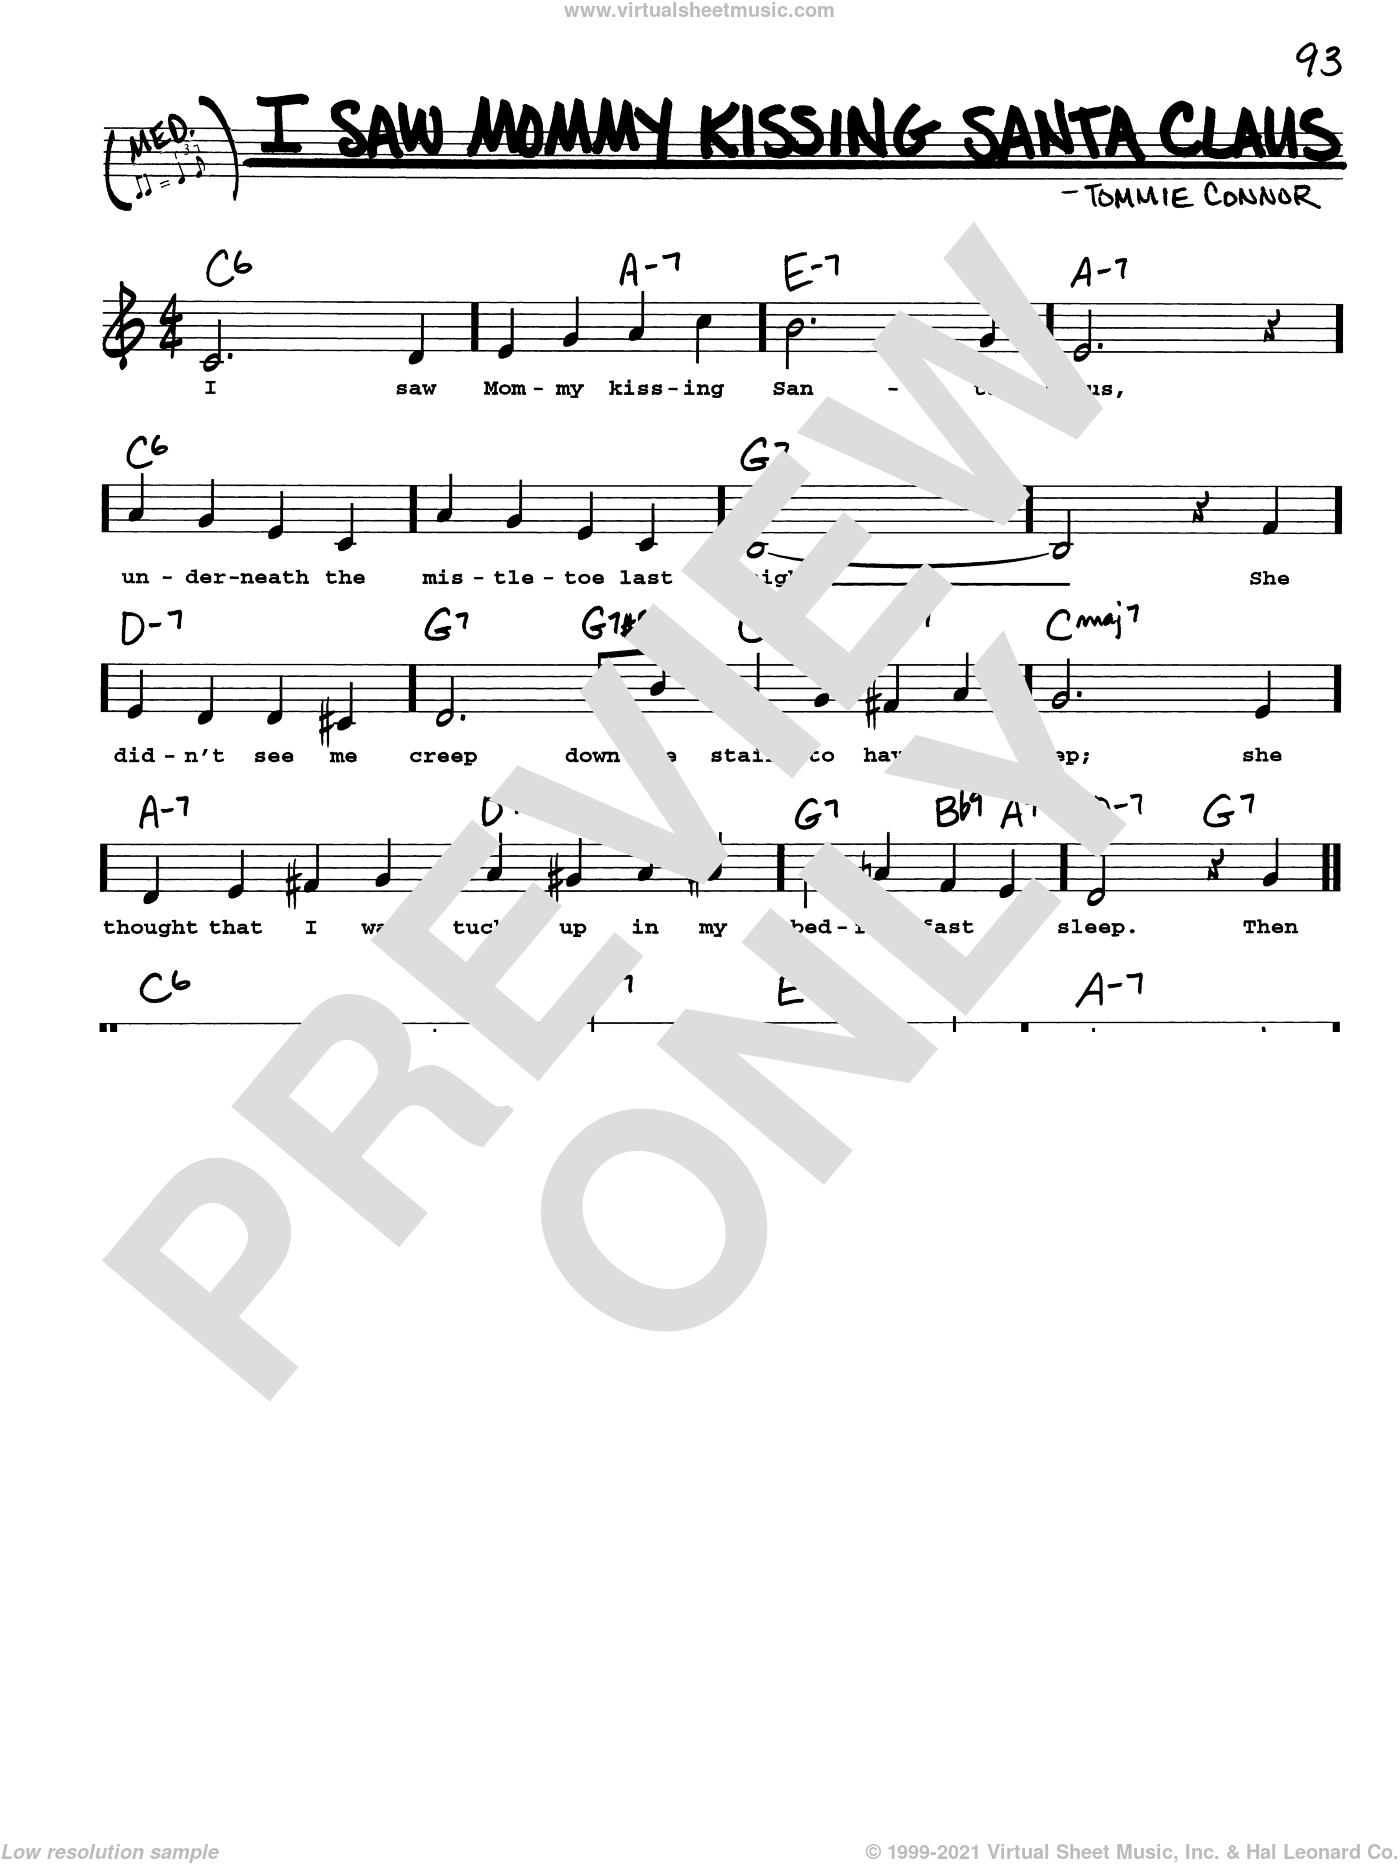 I Saw Mommy Kissing Santa Claus sheet music for voice and other instruments (real book with lyrics) by Tommie Connor, intermediate skill level